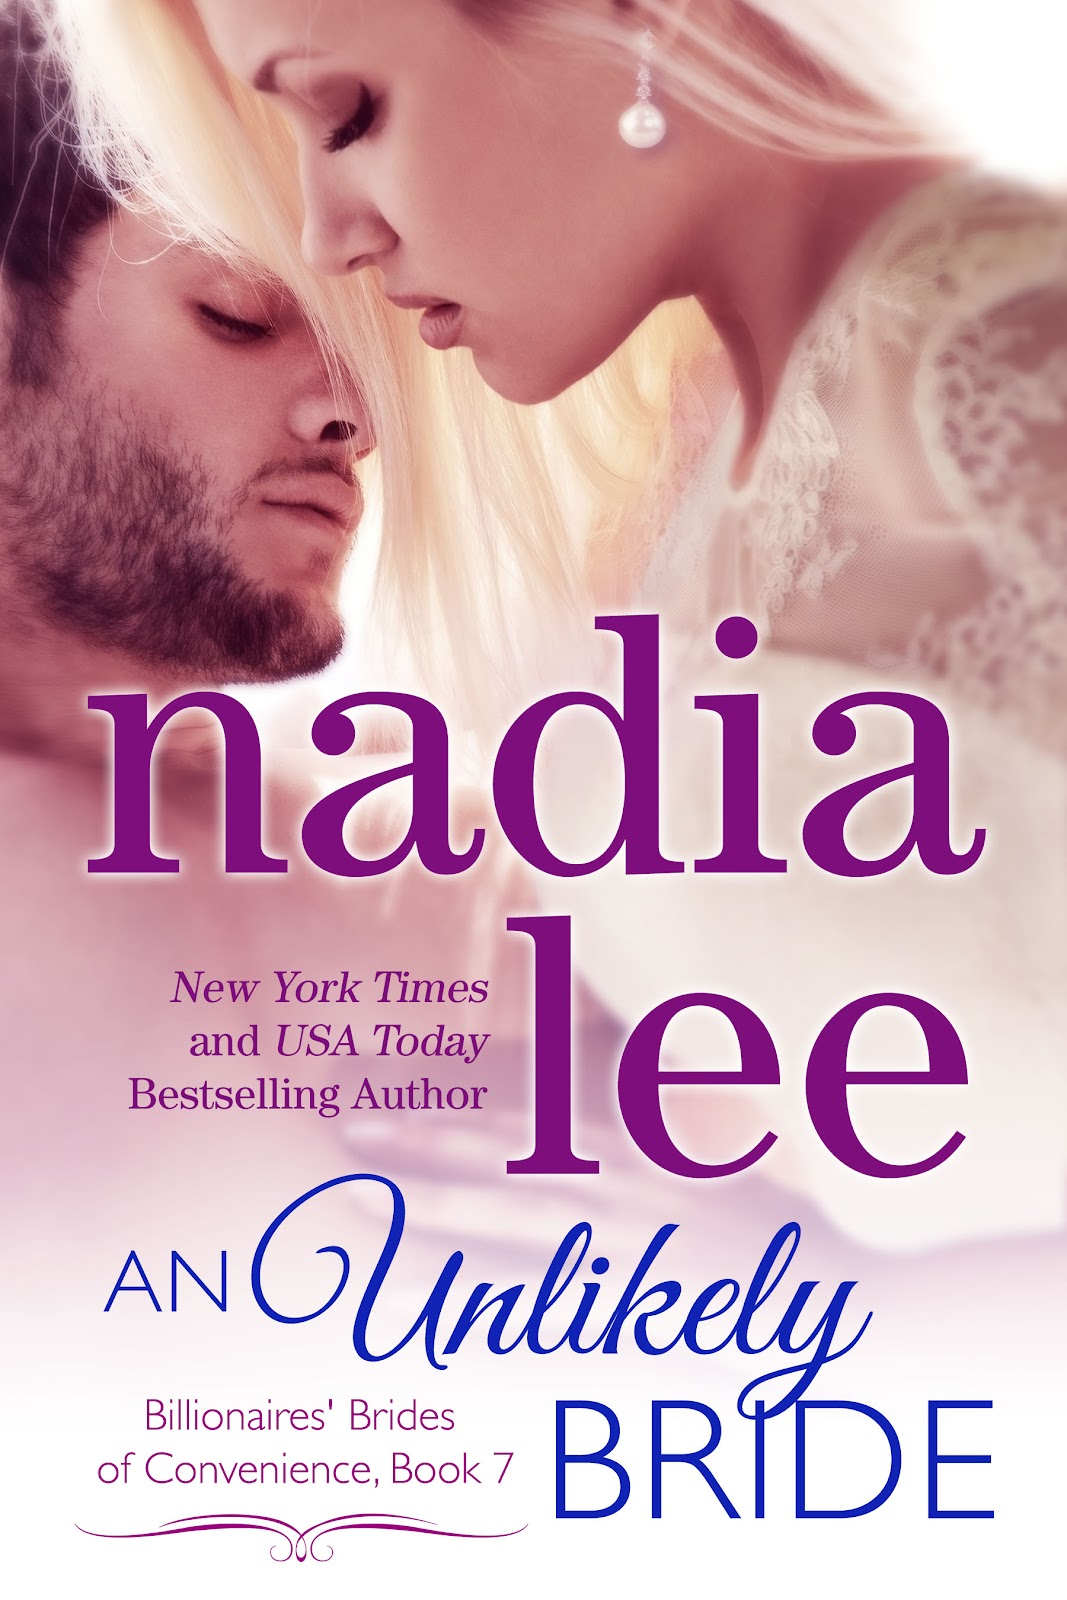 COVER REVEAL FOR NADIA LEE'S AN UNLIKELY BRIDE, BOOK 7 IN